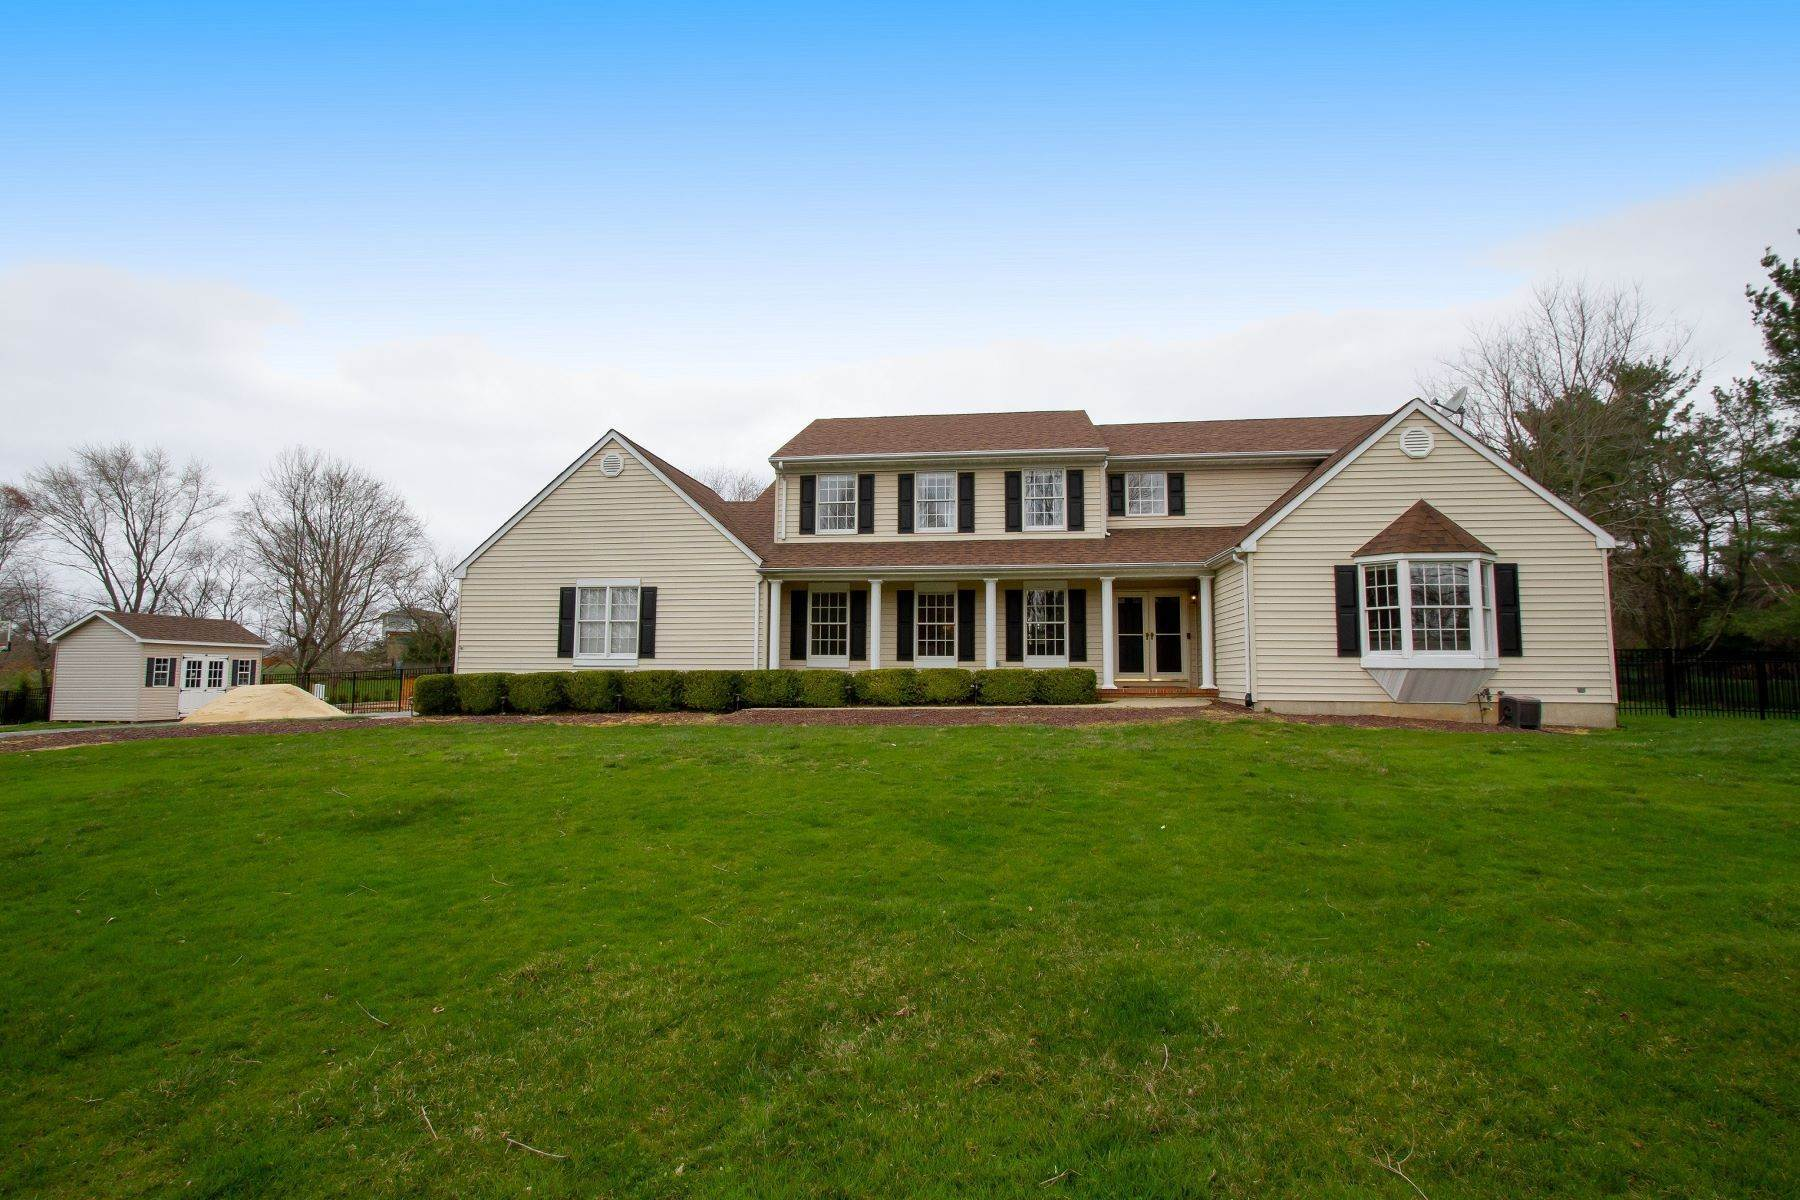 Single Family Homes for Sale at 19 Red Hawk Road S 19 Red Hawk Rd S Colts Neck, New Jersey 07722 United States